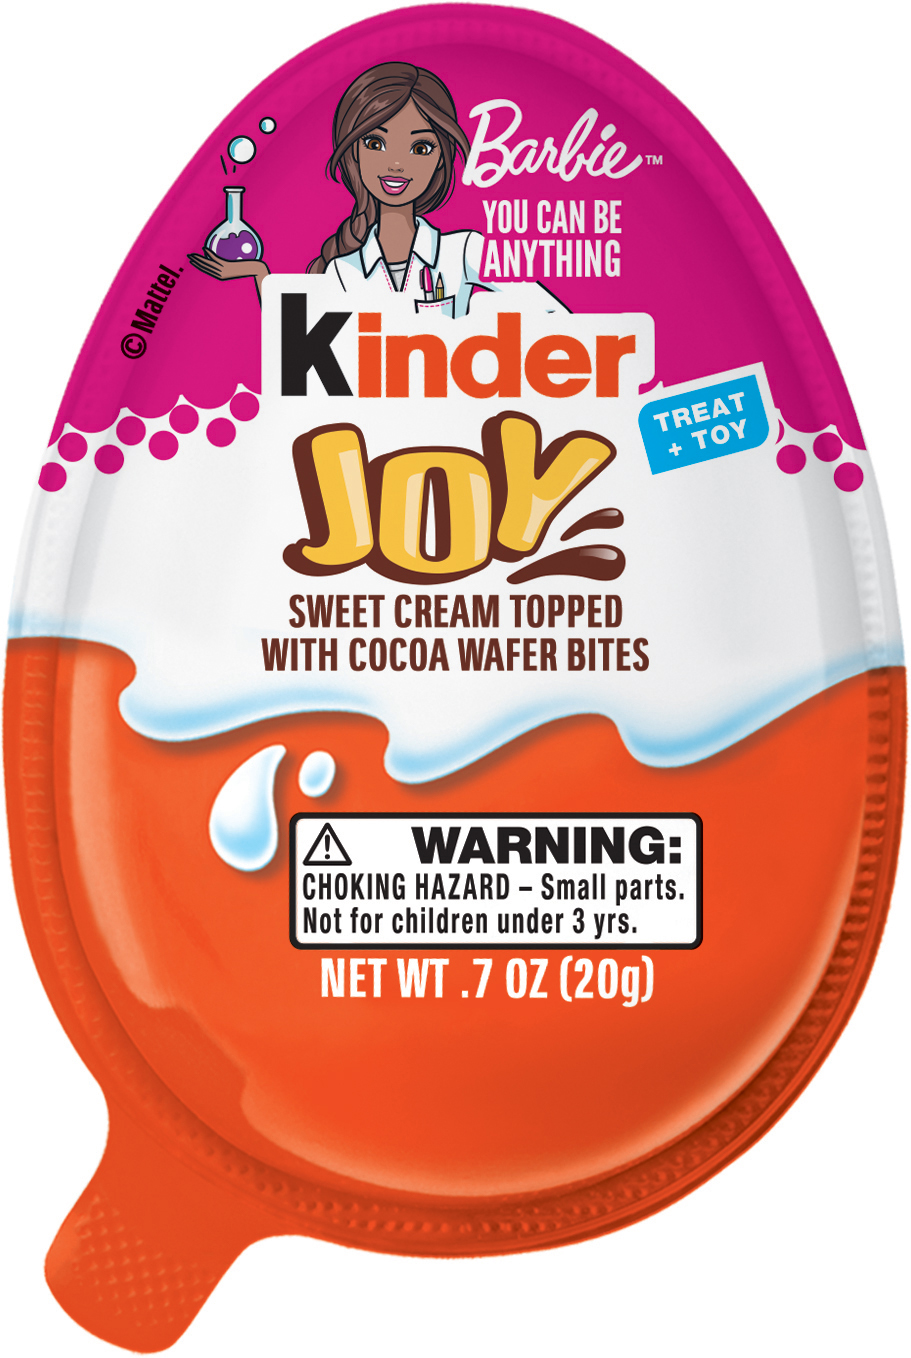 Kinder Joy® -  Barbie You Can Be Anything